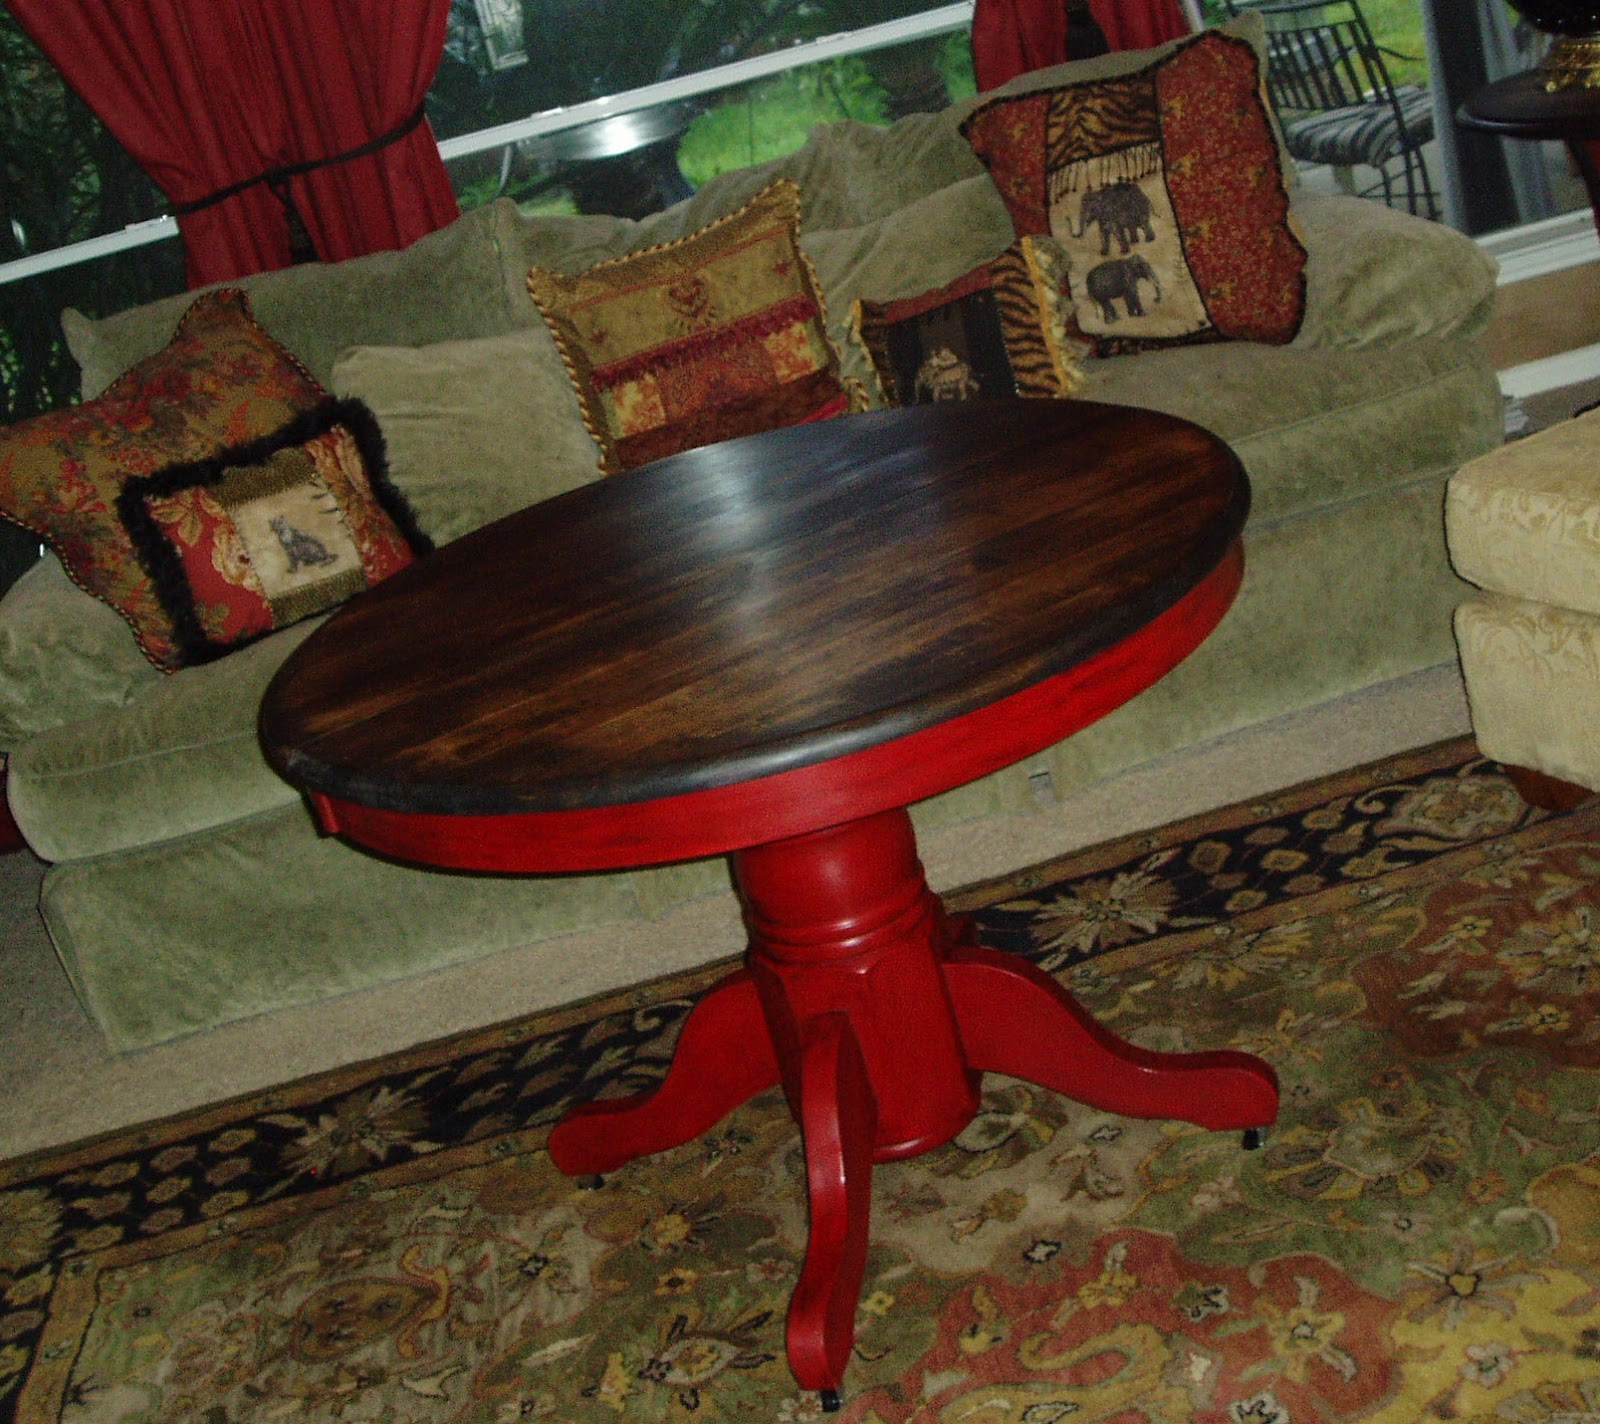 Charming Burnish Red Pedestal Table Hand Rubbed French Wax Finish With Aged  Coloring. Itu0027s A Simple Table But The Colors Add A Casual Richness To It U0026  The Castors ...